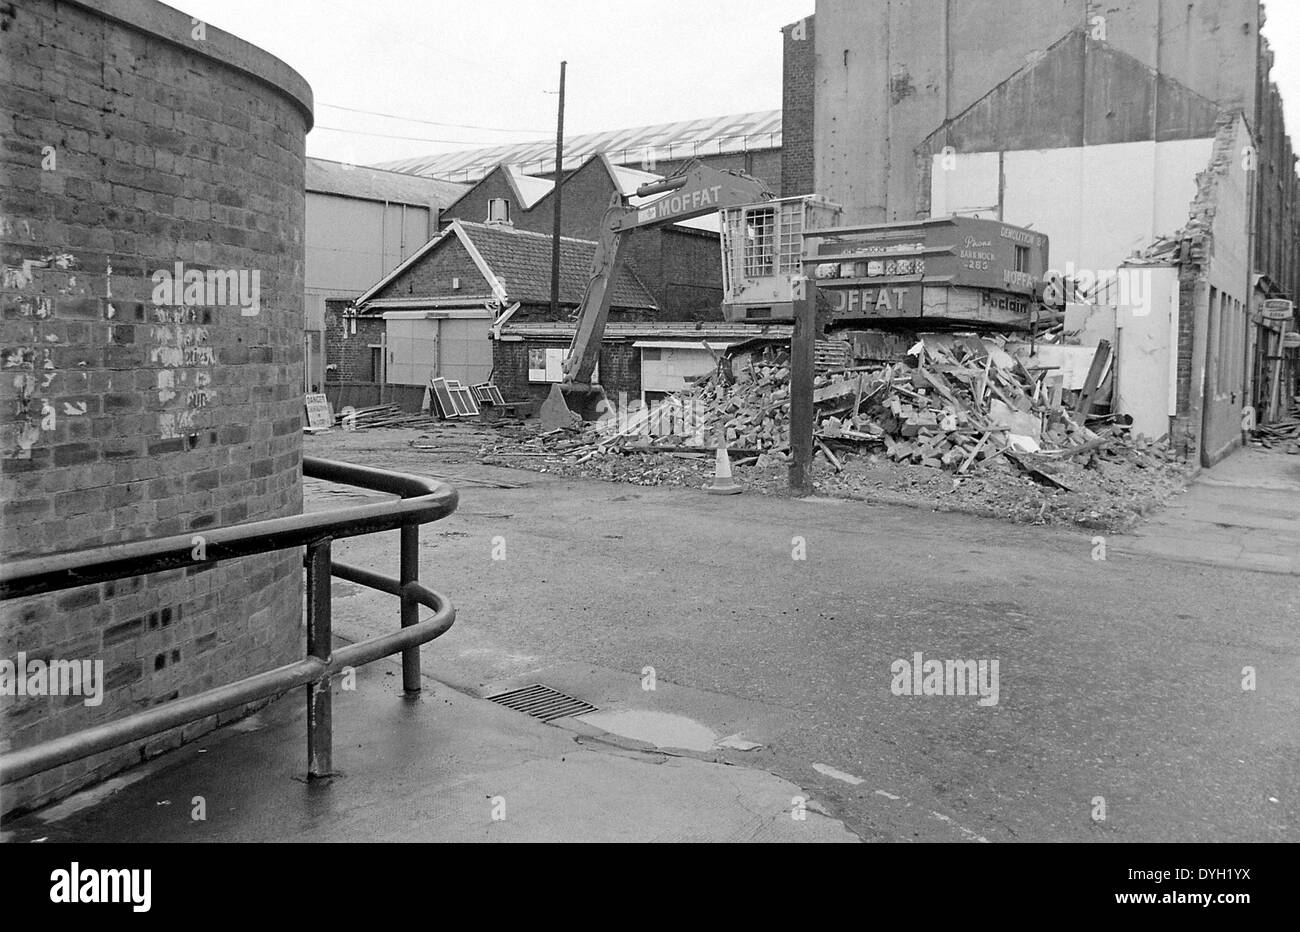 The old John Brown's Shipyard gatehouse being demolished in 1978. The small building in the background was the fire station - Stock Image